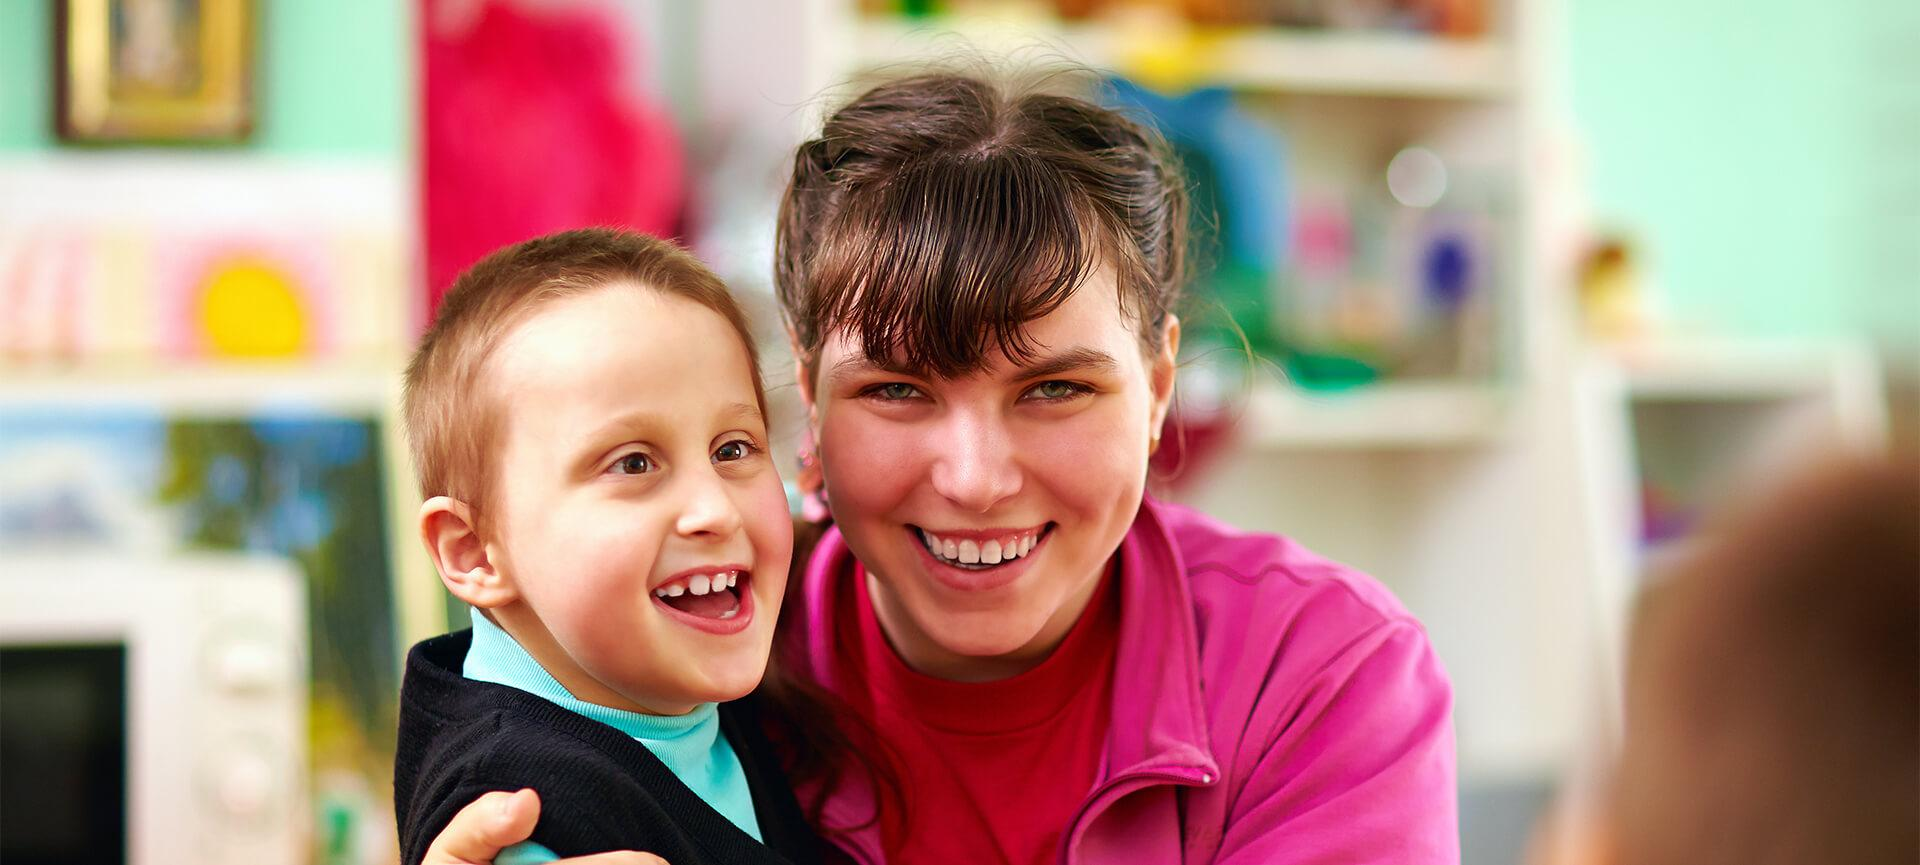 Boy with disability and girl smiling